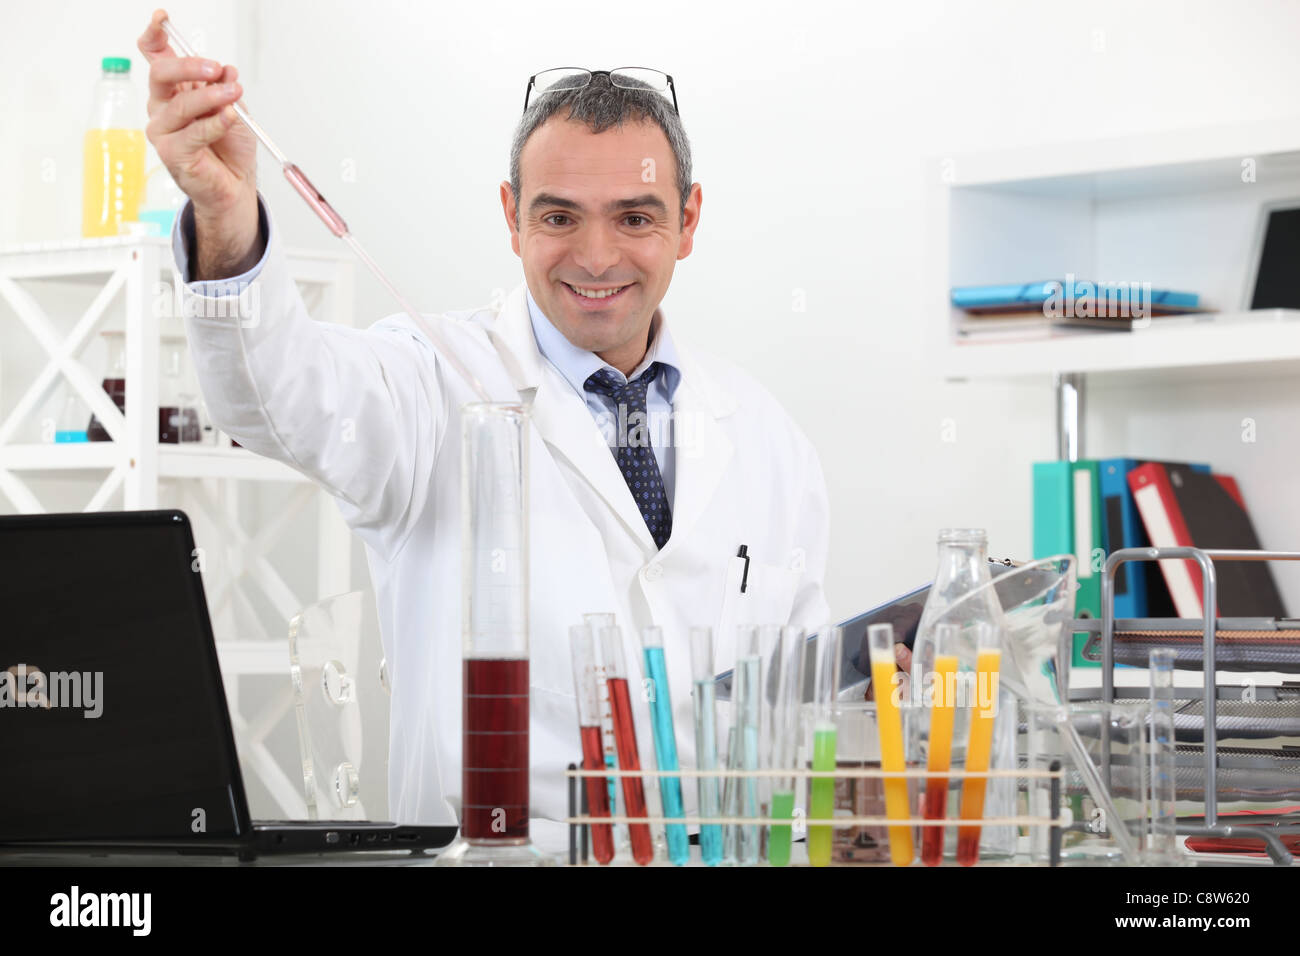 scientist making tests in the lab - Stock Image